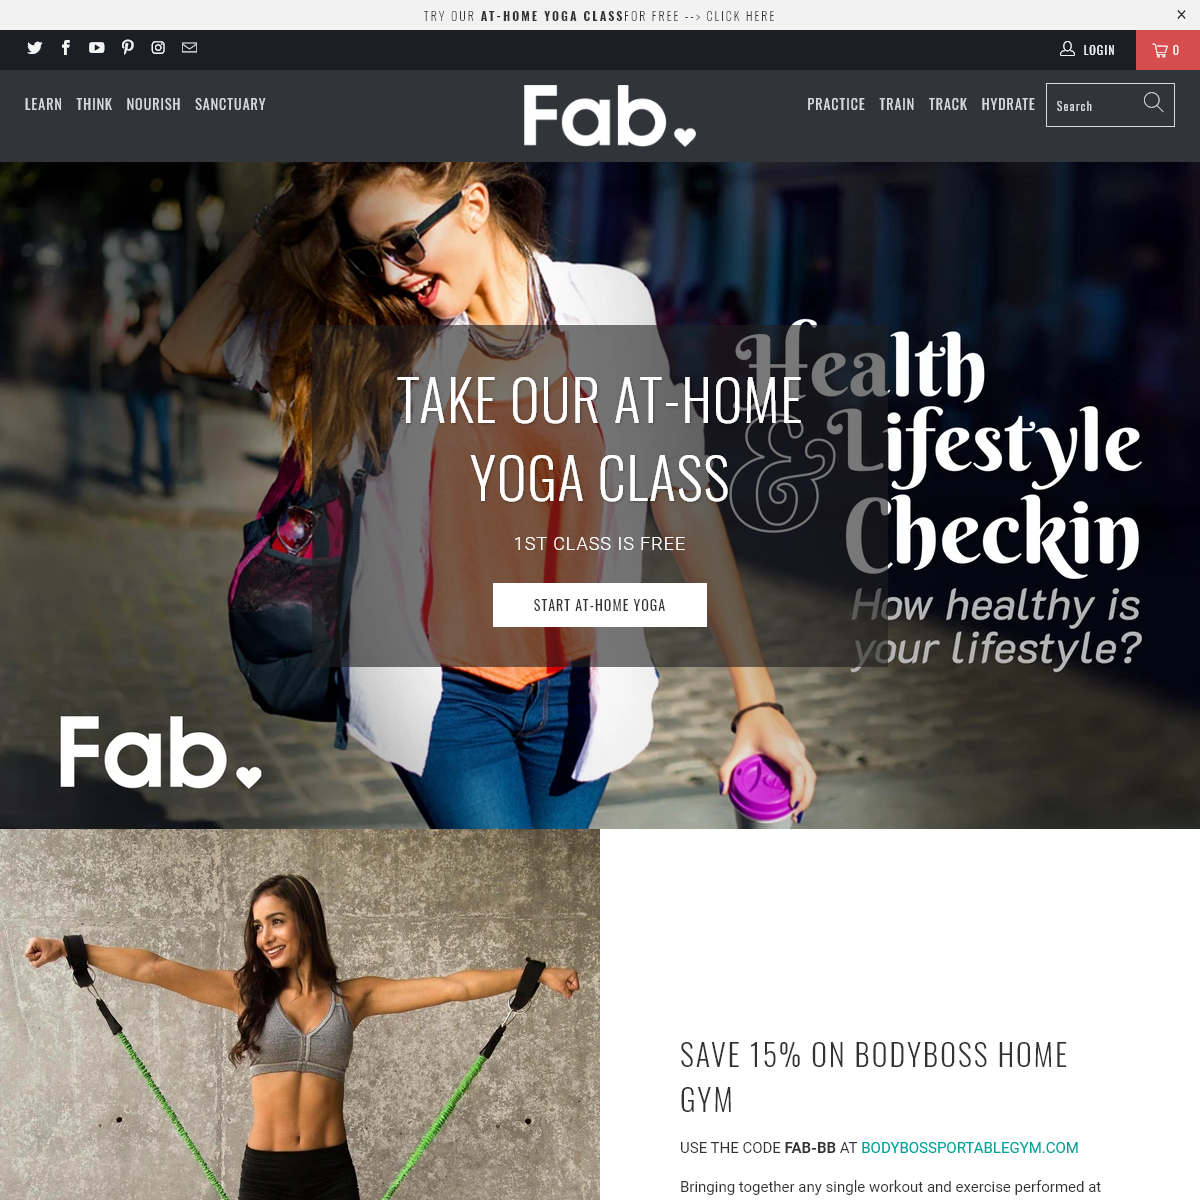 Fab - live your fab life. Fitness, health & wellness products for you.